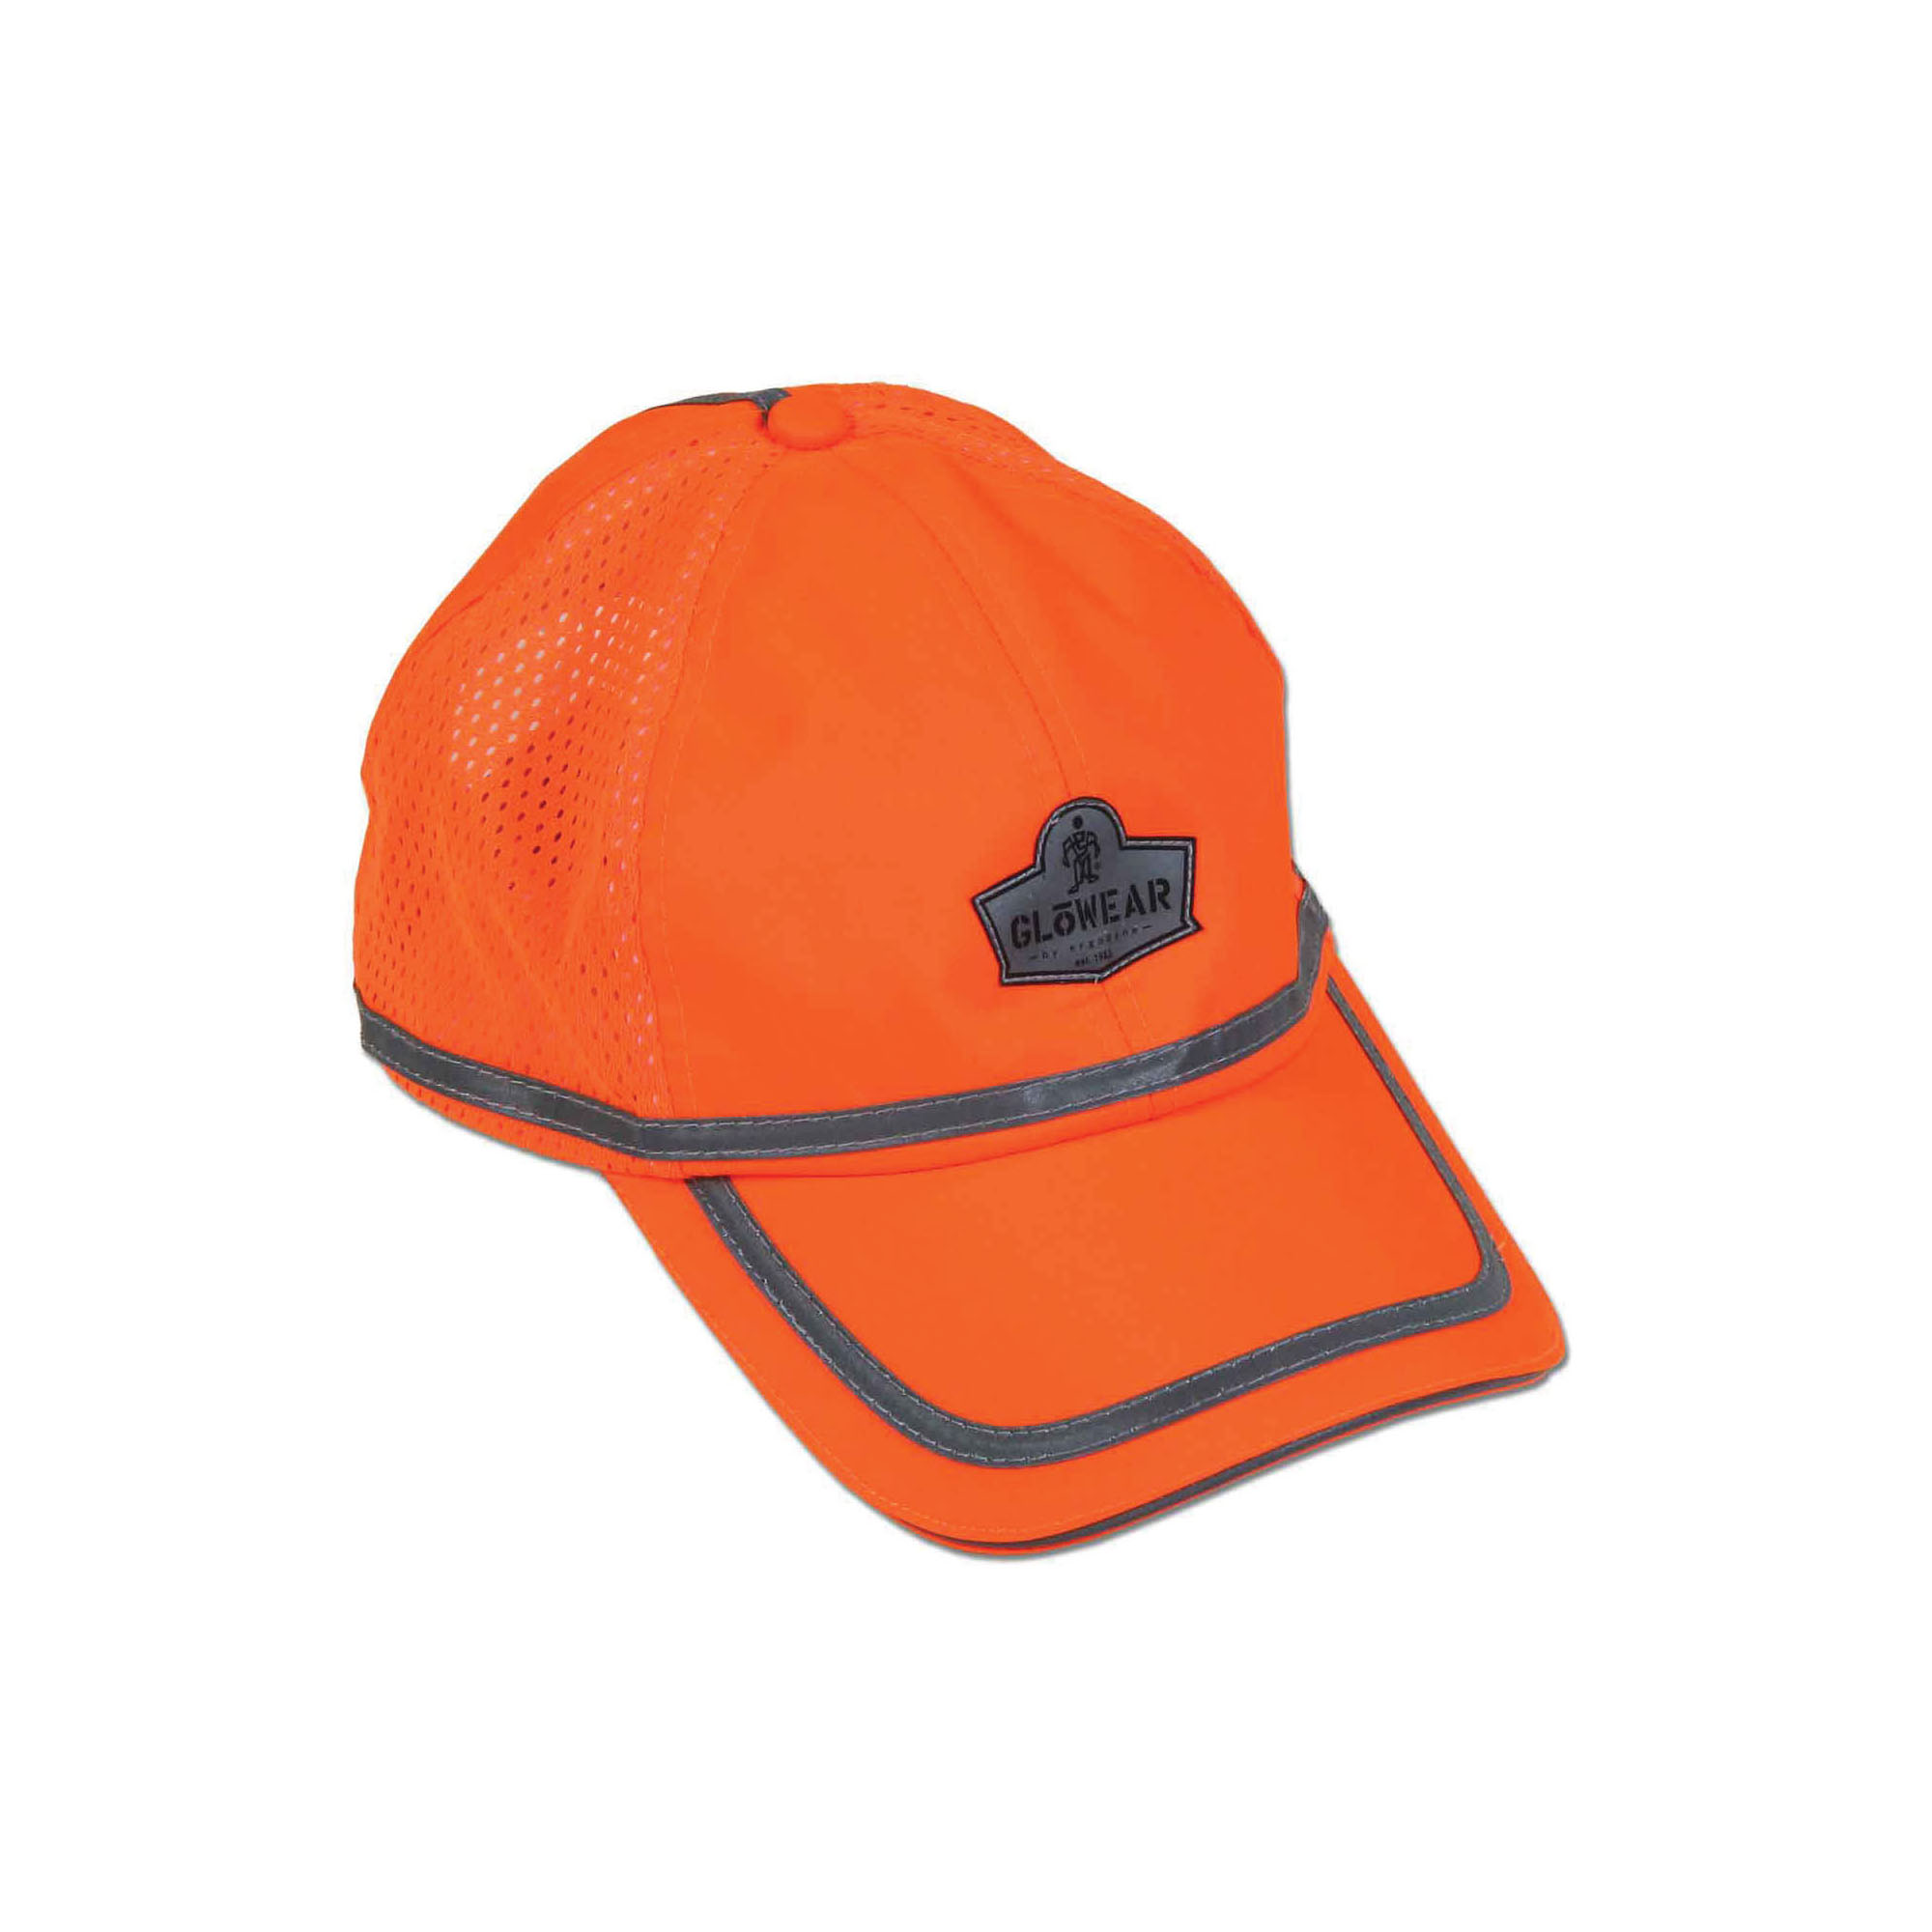 GloWear® 23238 8930 Baseball Cap, Universal, Hi-Viz Orange, 150D Oxford Polyester